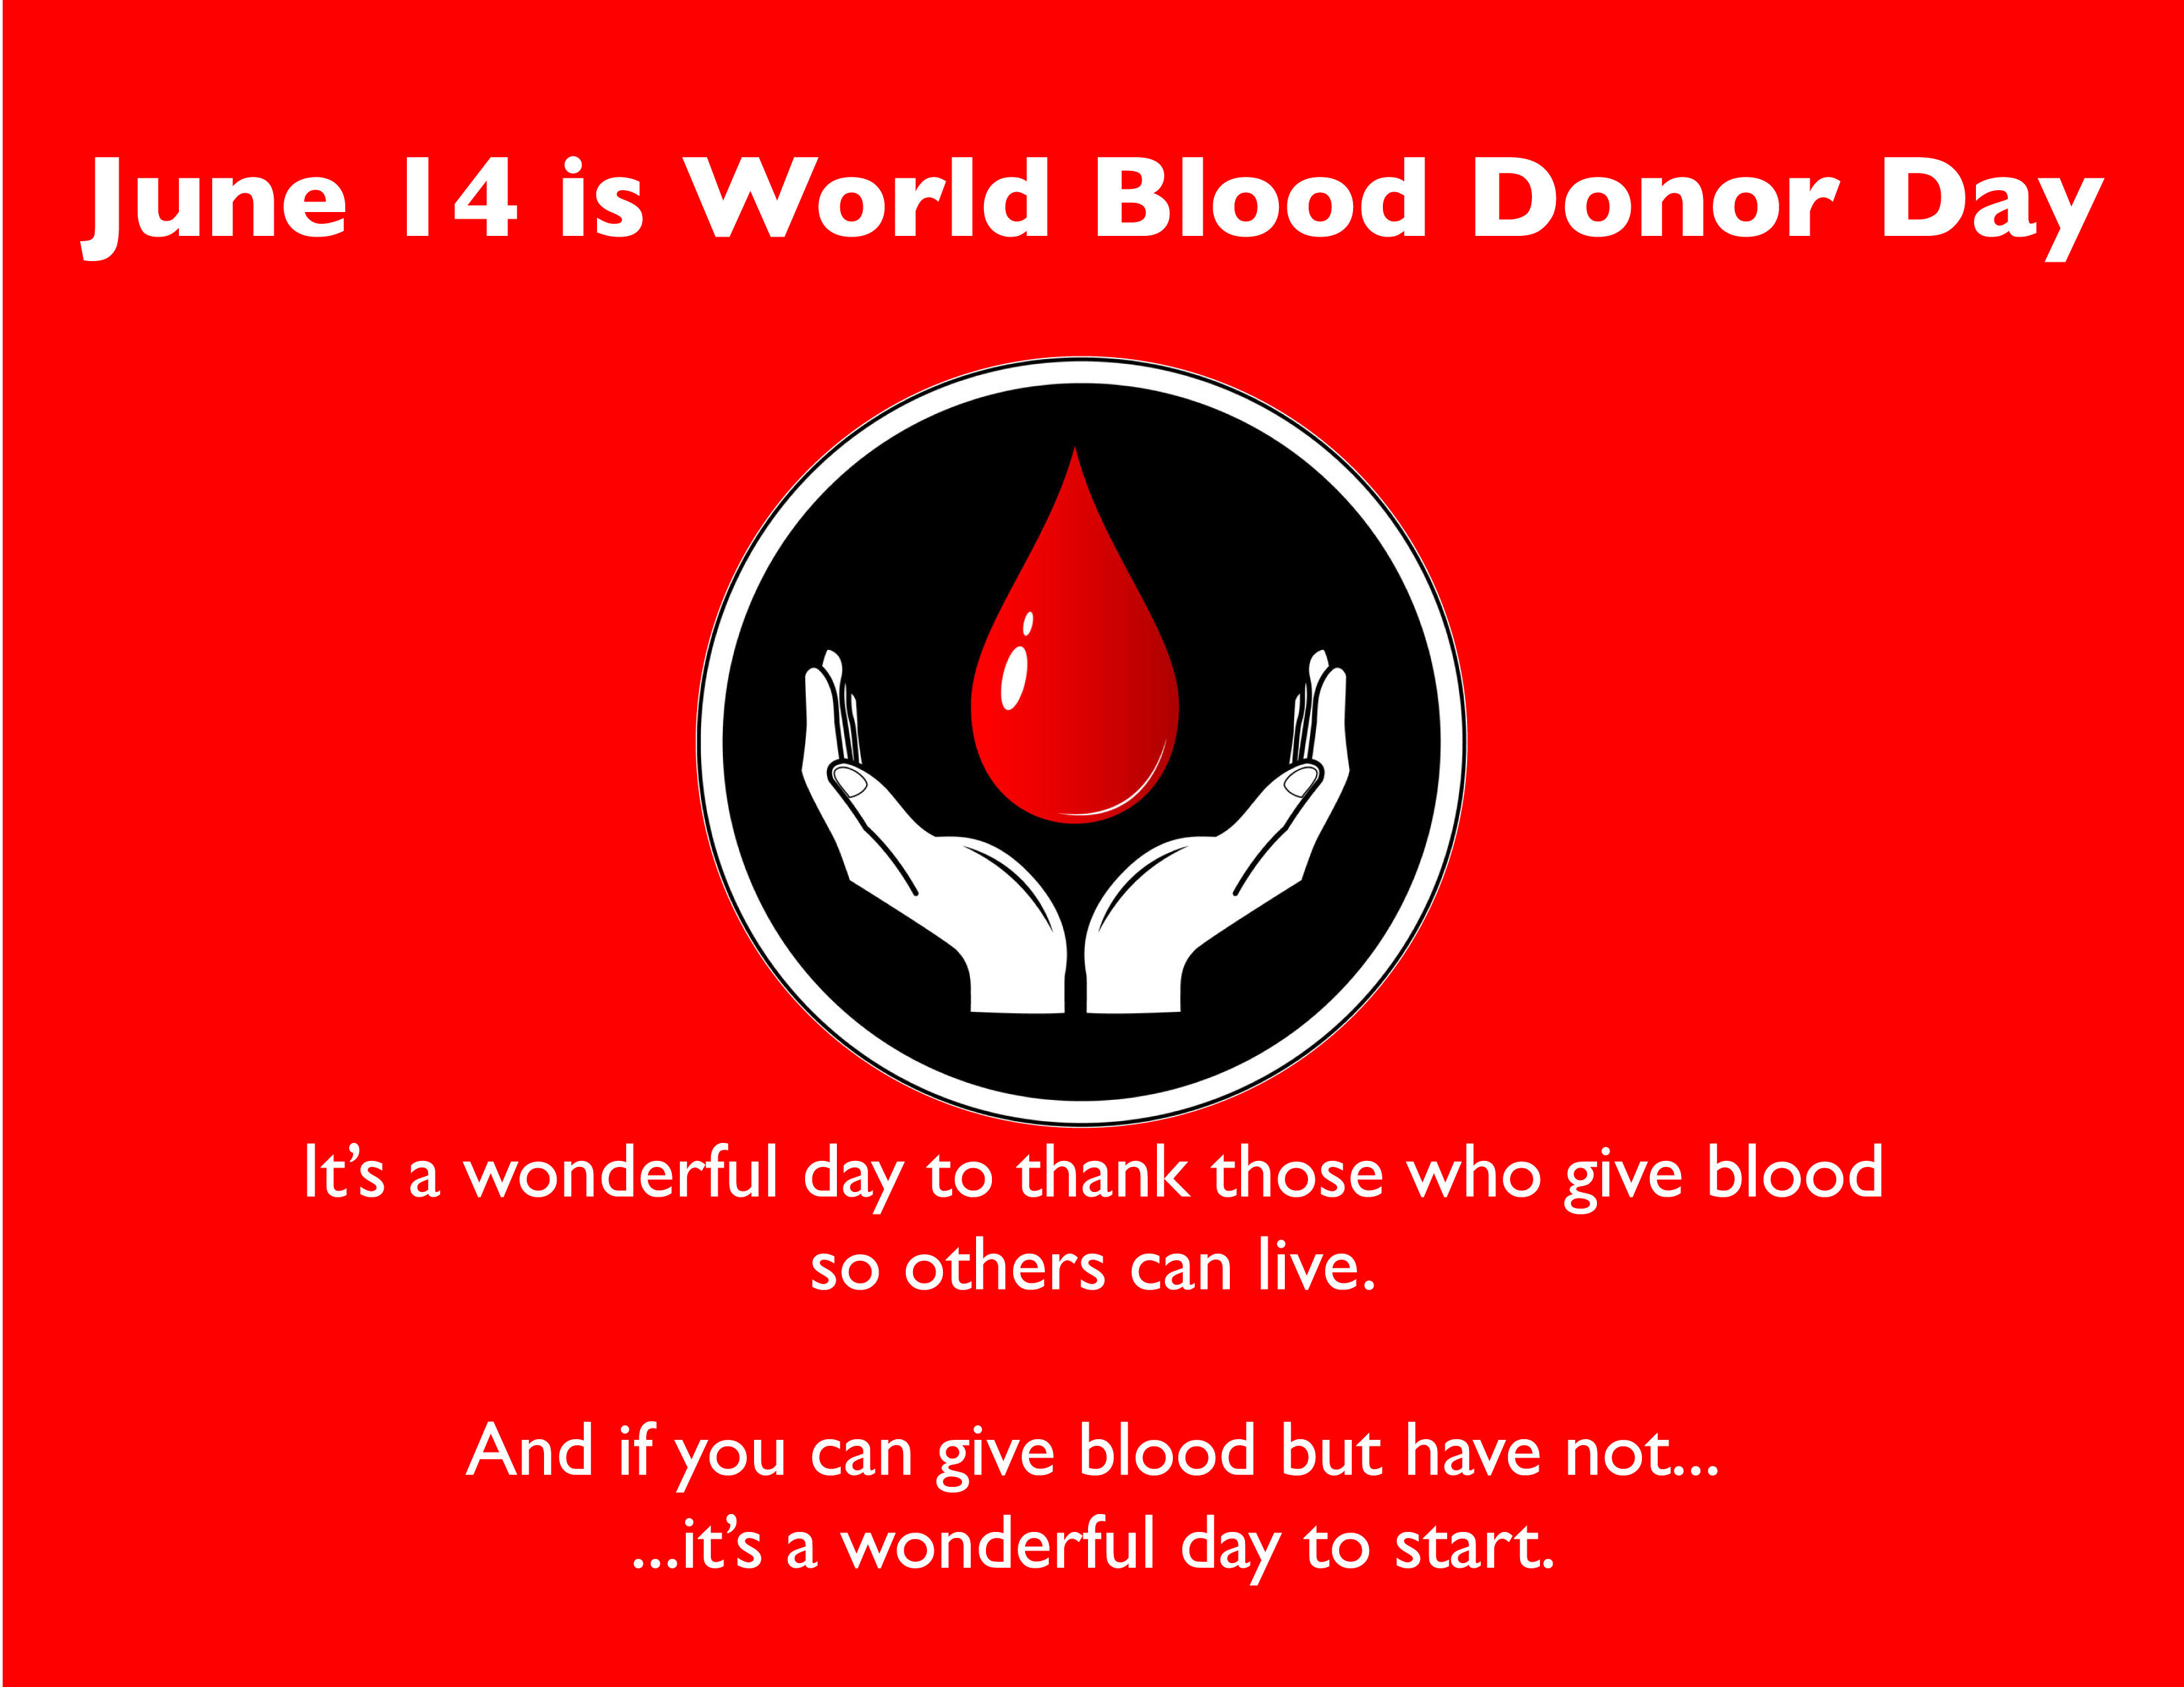 blood donation around the world Blood donation around the world blood donation around the world 1932 words jan 26th, 2018 8 pages without blood, the human body would stop working blood is fluid of life and health for each individual body every single drop of blood contains millions of red blood cells which functions as transporting oxygen to all parts of the body.